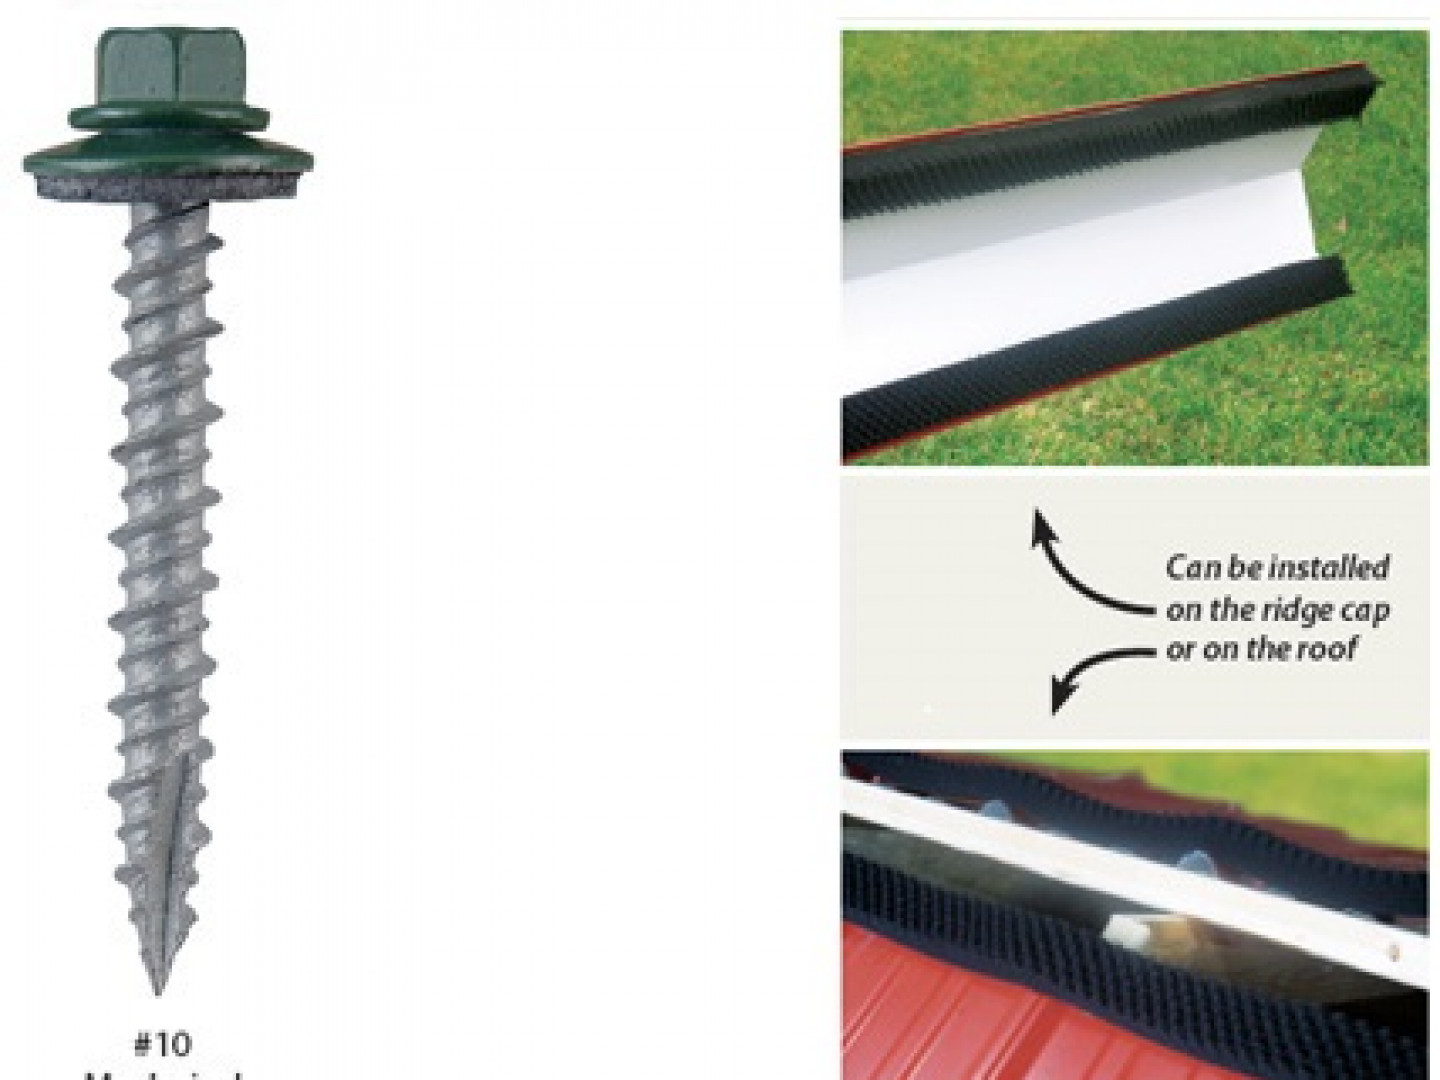 Screws & other metal roofing accessories